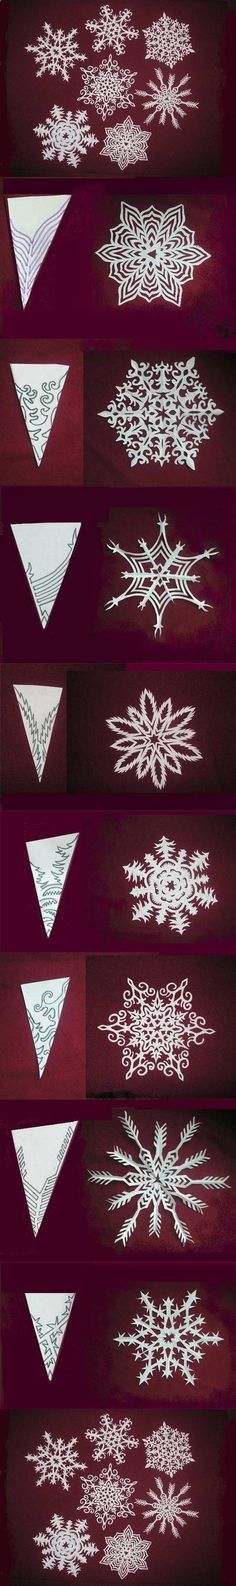 Every year I try to figure out how I made snowflakes as a child and every year they come out odd . Finally a tutorial, lol.